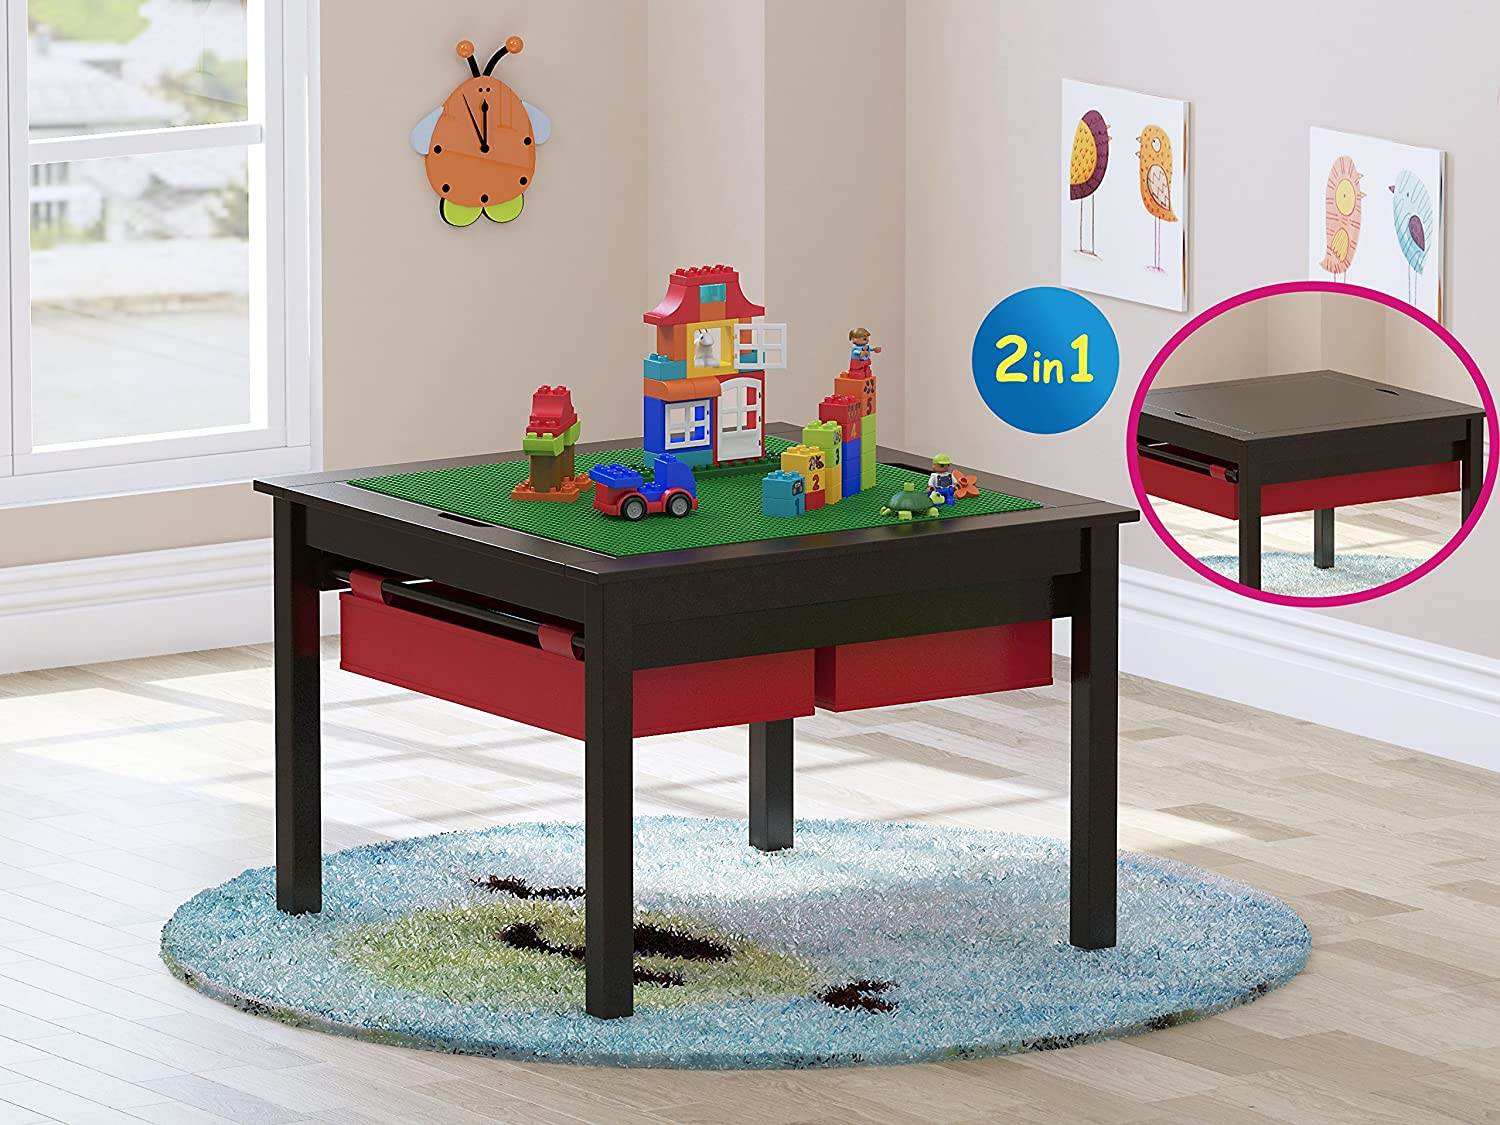 UTEX UTEX 2 in 1 Kids Construction Play Table with Storage Drawers and Built in Plate